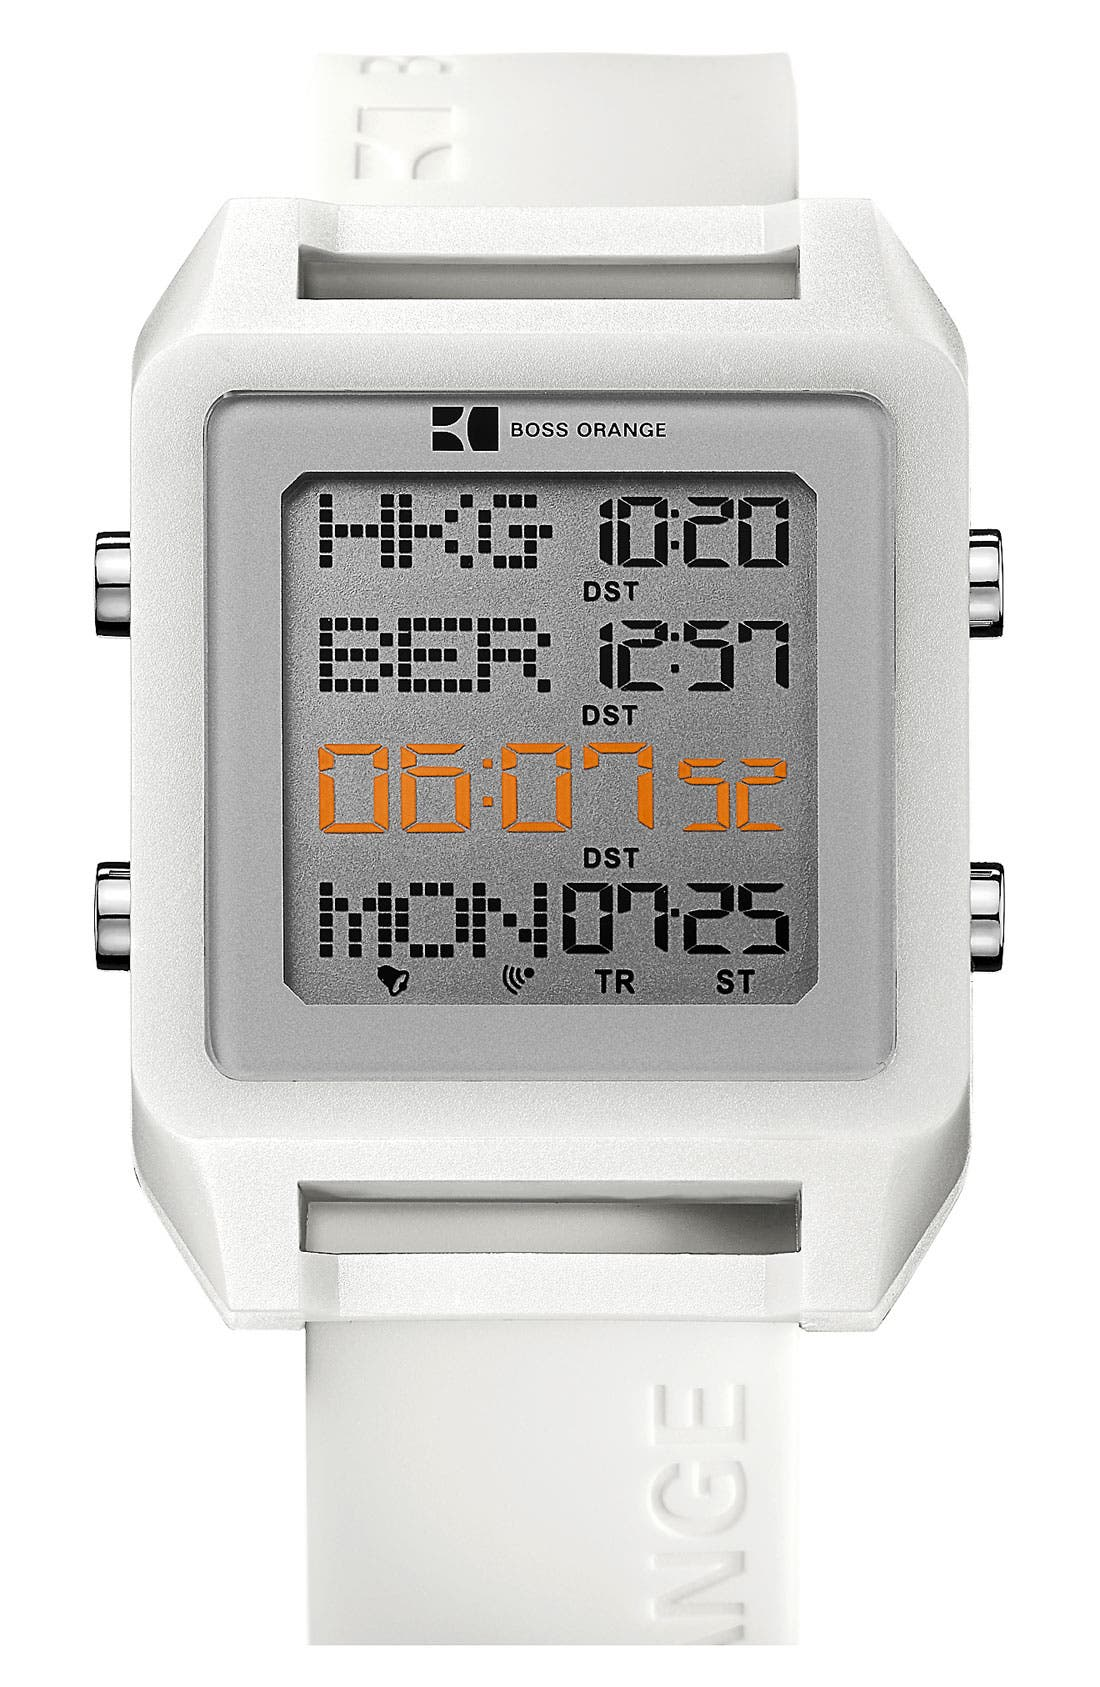 Main Image - BOSS Orange Square Digital Silicone Strap Watch, 40mm x 54mm